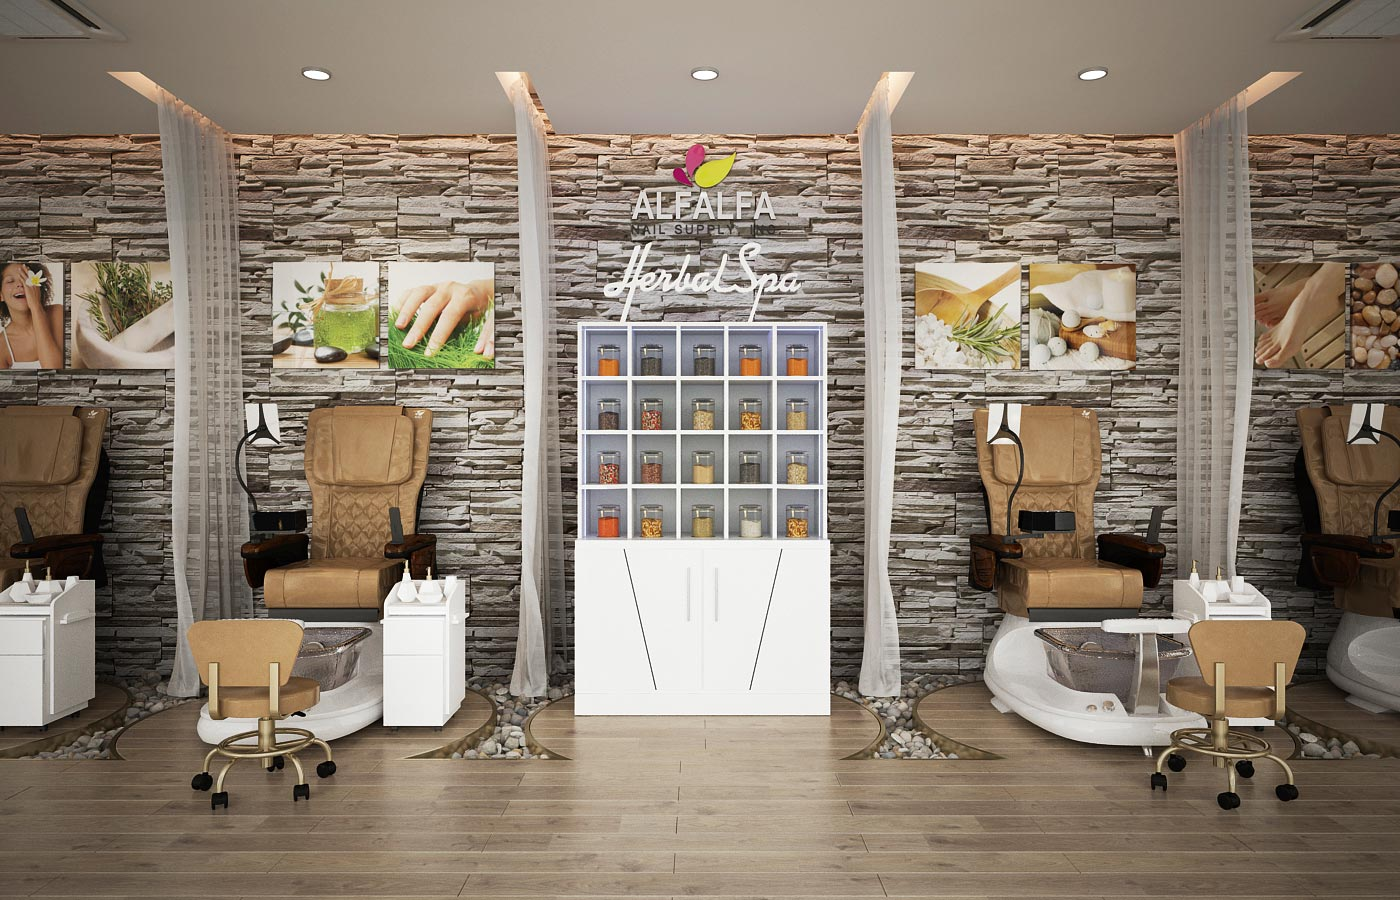 Alfalfa Nail Supply GSpa F Pedicure Spa Chair in Salon